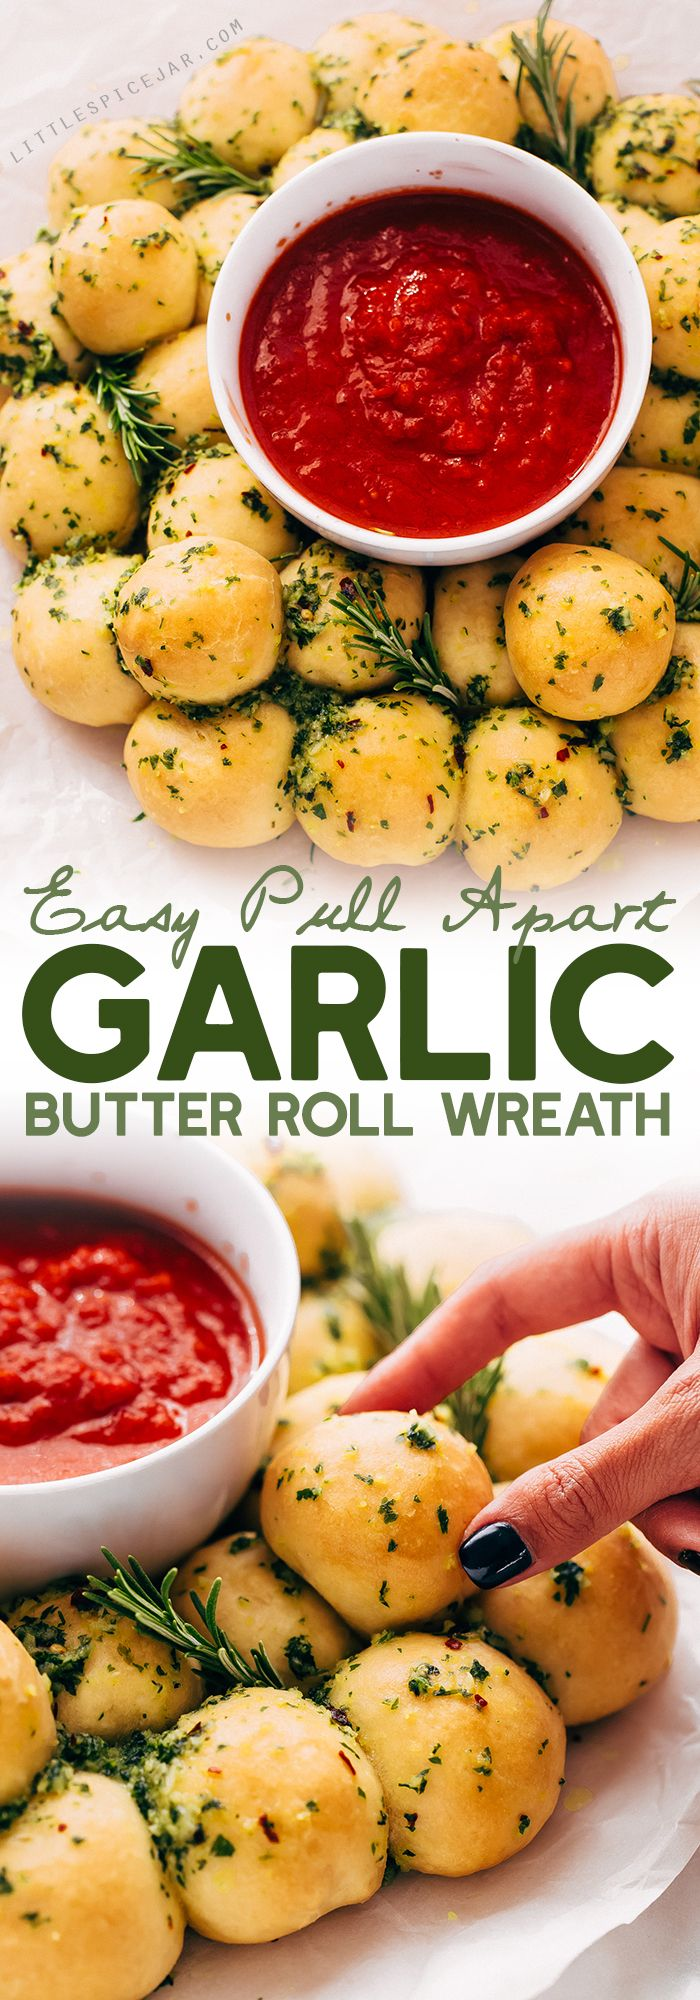 Easy Pull Apart Garlic Roll Wreath - learn how to make a wreath out of homemade garlic rolls! This recipe makes a show-stopper appetizer for all your holiday parties! #garlicrolls #garlicknots #garlicrollwreath #garlicknotwreath #holidayappetizers   Littlespicejar.com